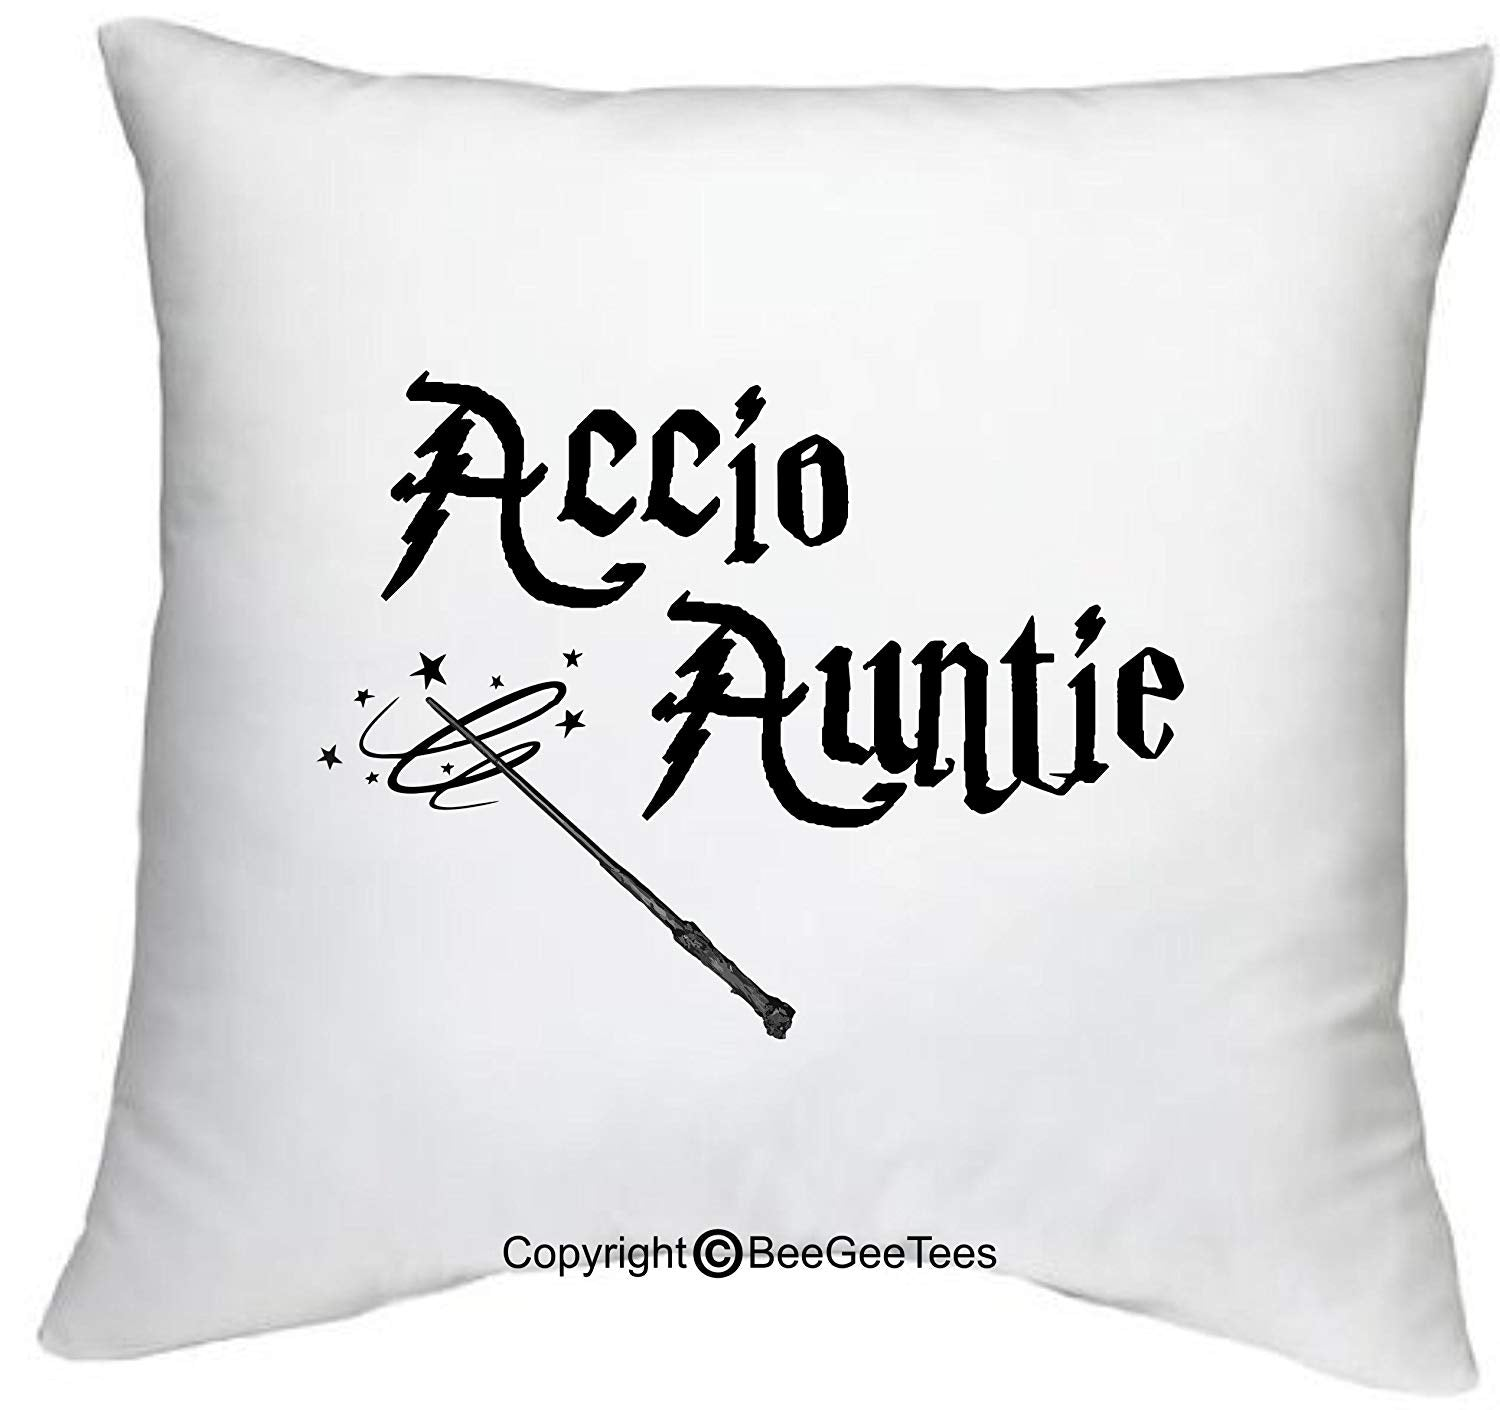 "Accio Auntie Funny Harry Potter Inspired 18"" x 18"" Zippered Pillow Cover by BeeGeeTees"